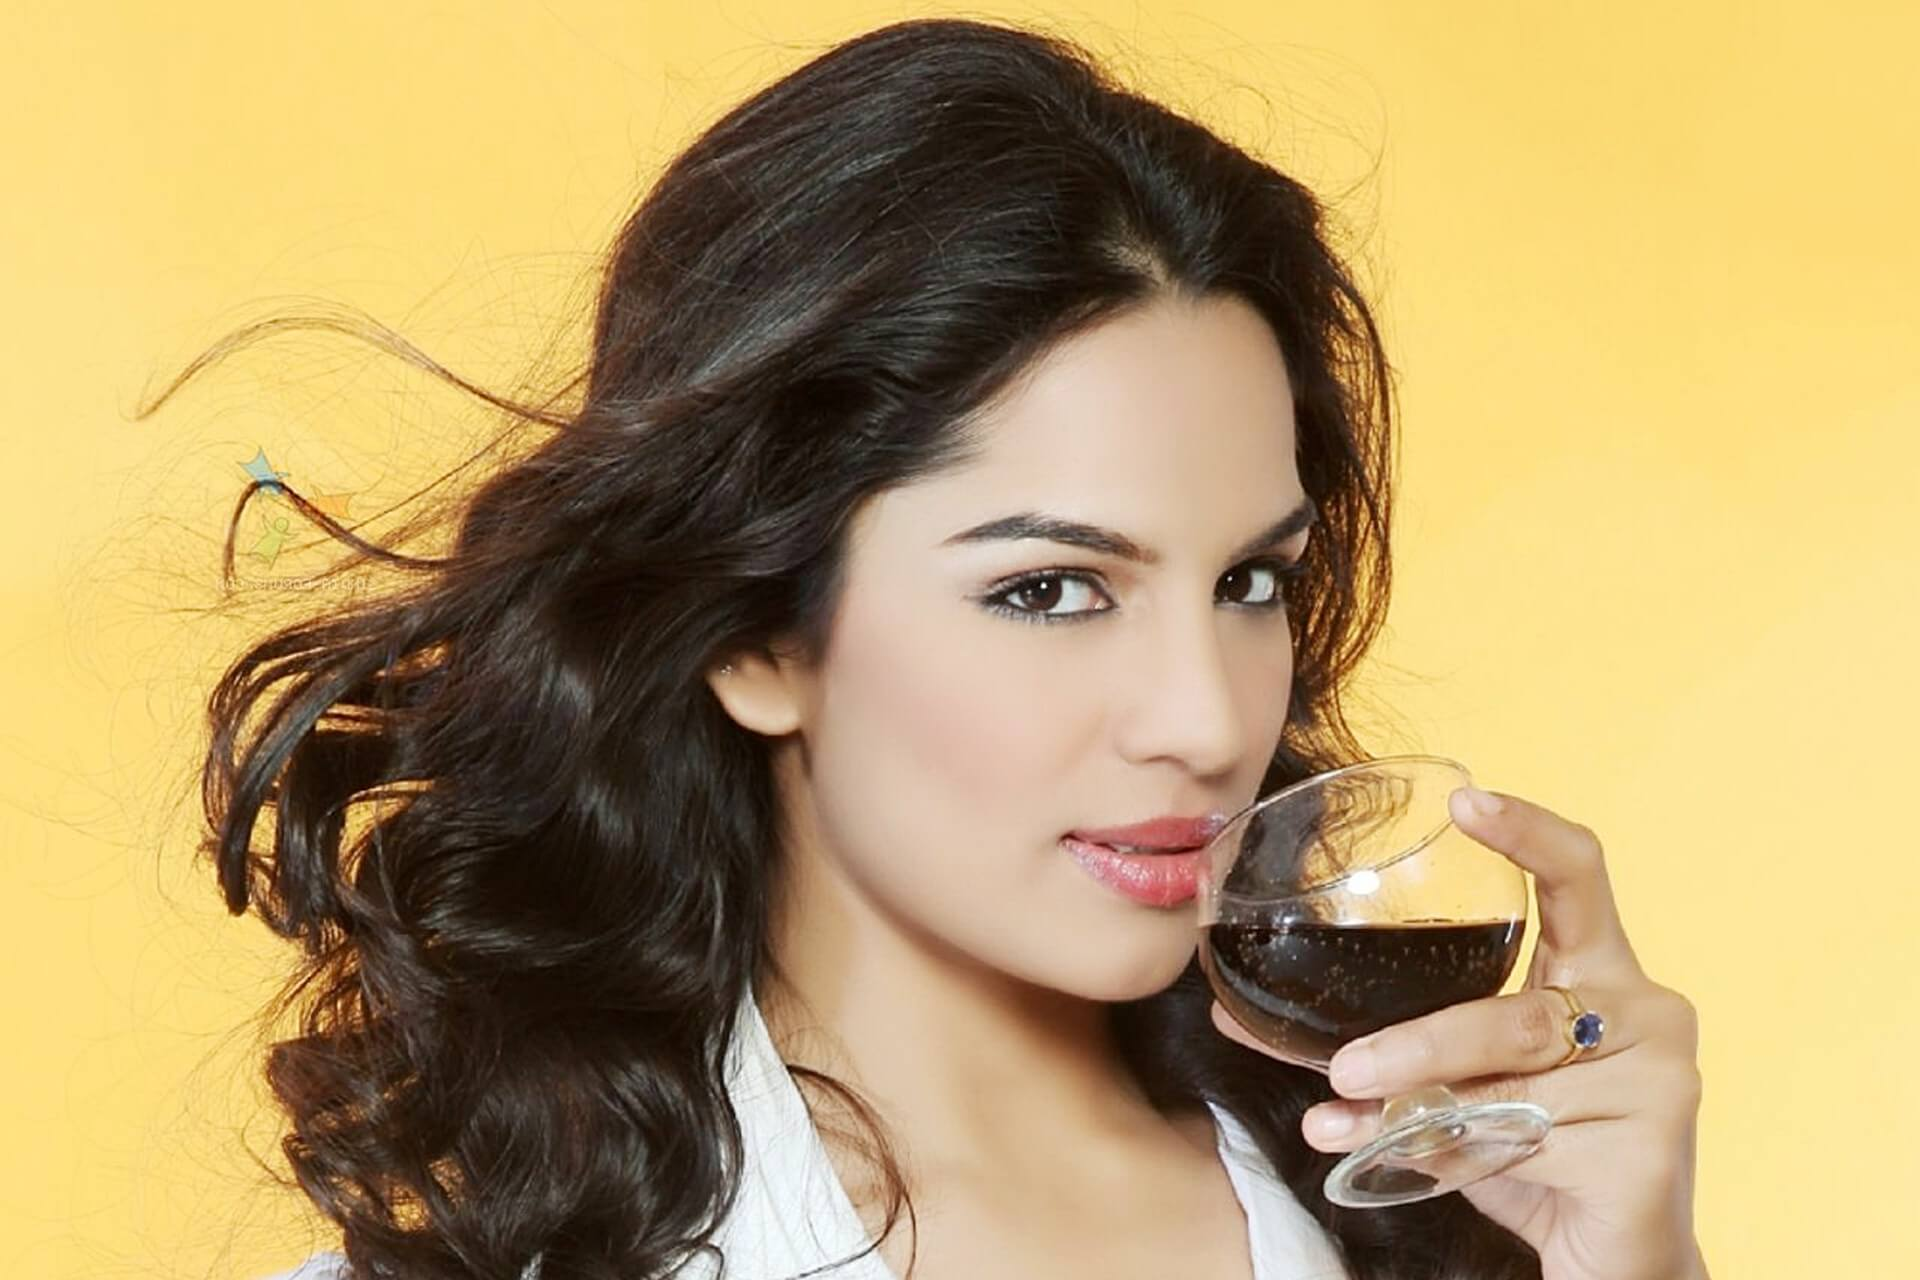 Shikha Singh Age, Sister, Husband, Biography, Date Of Birth, Photo(image), Marriage, Net Worth, Education, Instagram, Facebook, Wiki, Imdb, Twitter (6) (1)